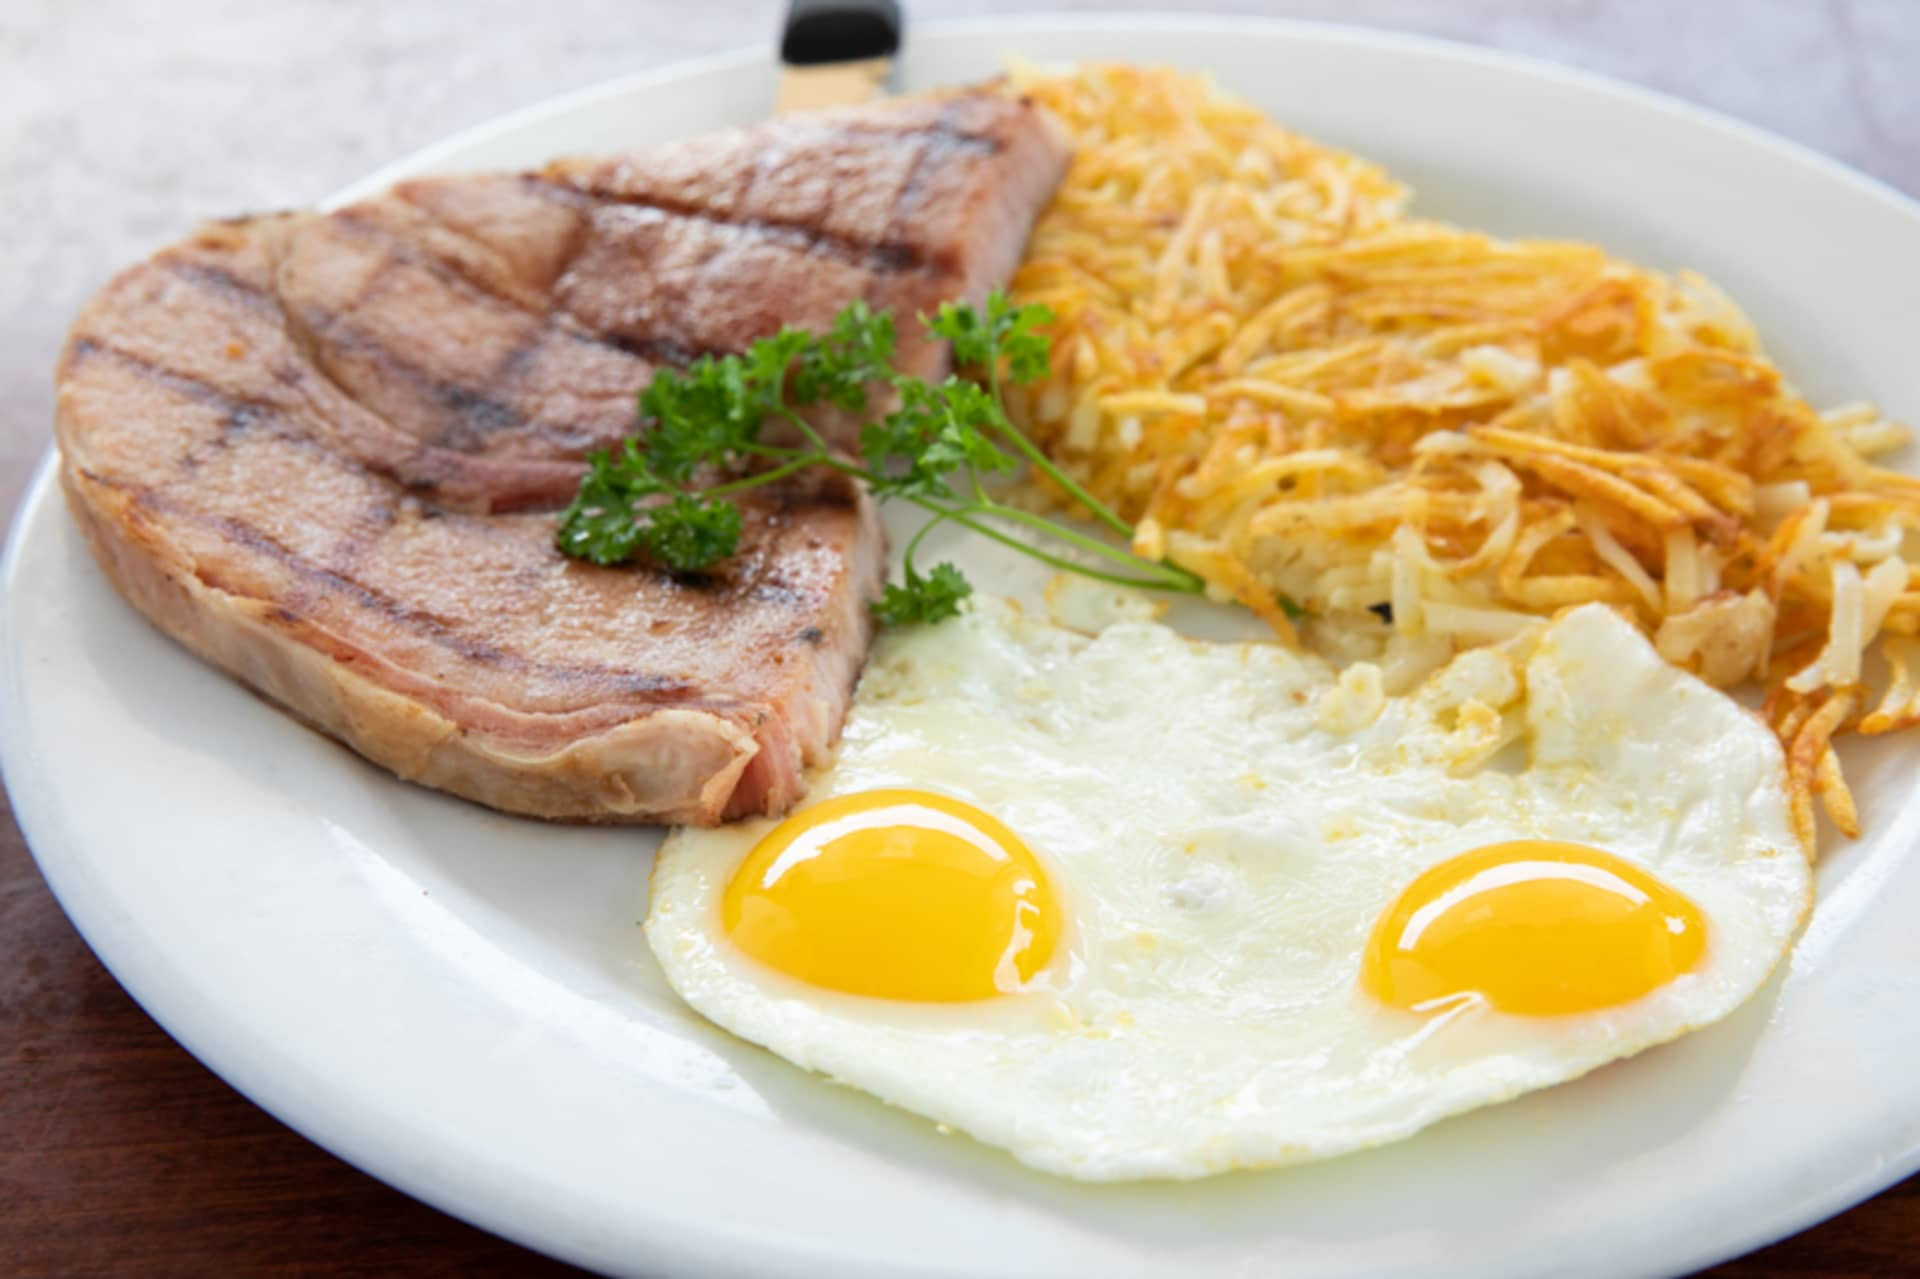 Monday - Ham Steak & Eggs